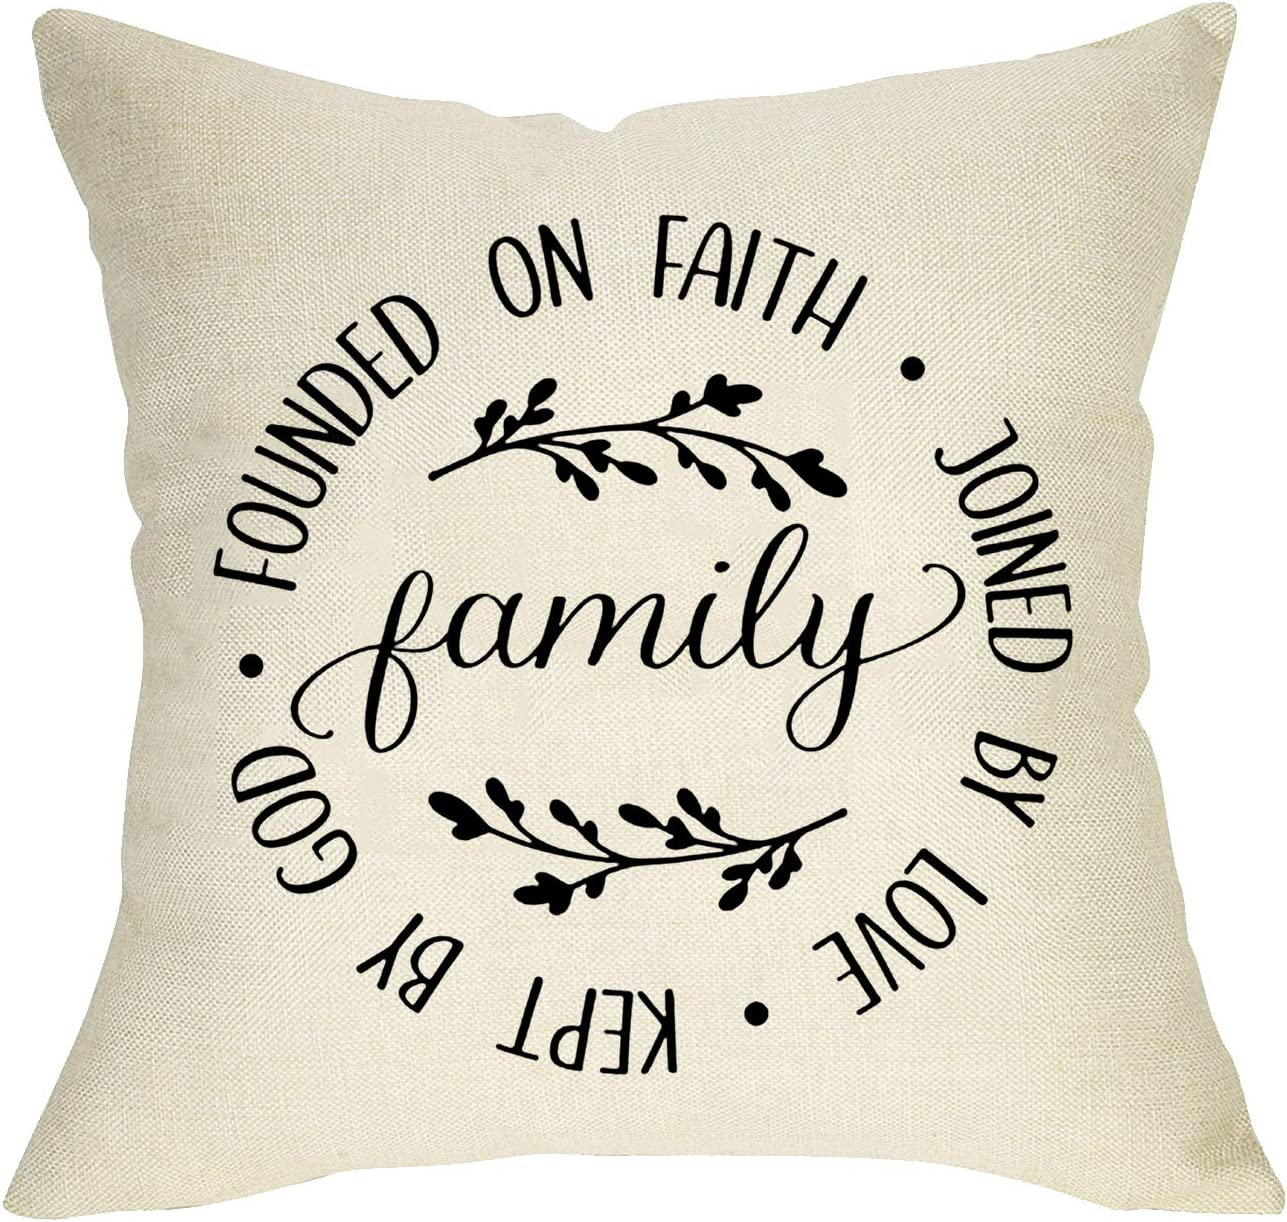 FBCOO Family Quotes Decorative Throw Pillow Cover Founded on Faith Joined by Love Kept by God, Rustic Farmhouse Cushion Case Olive Branch Decorations Home Square Pillowcase Decor 18 x 18 Cotton Linen